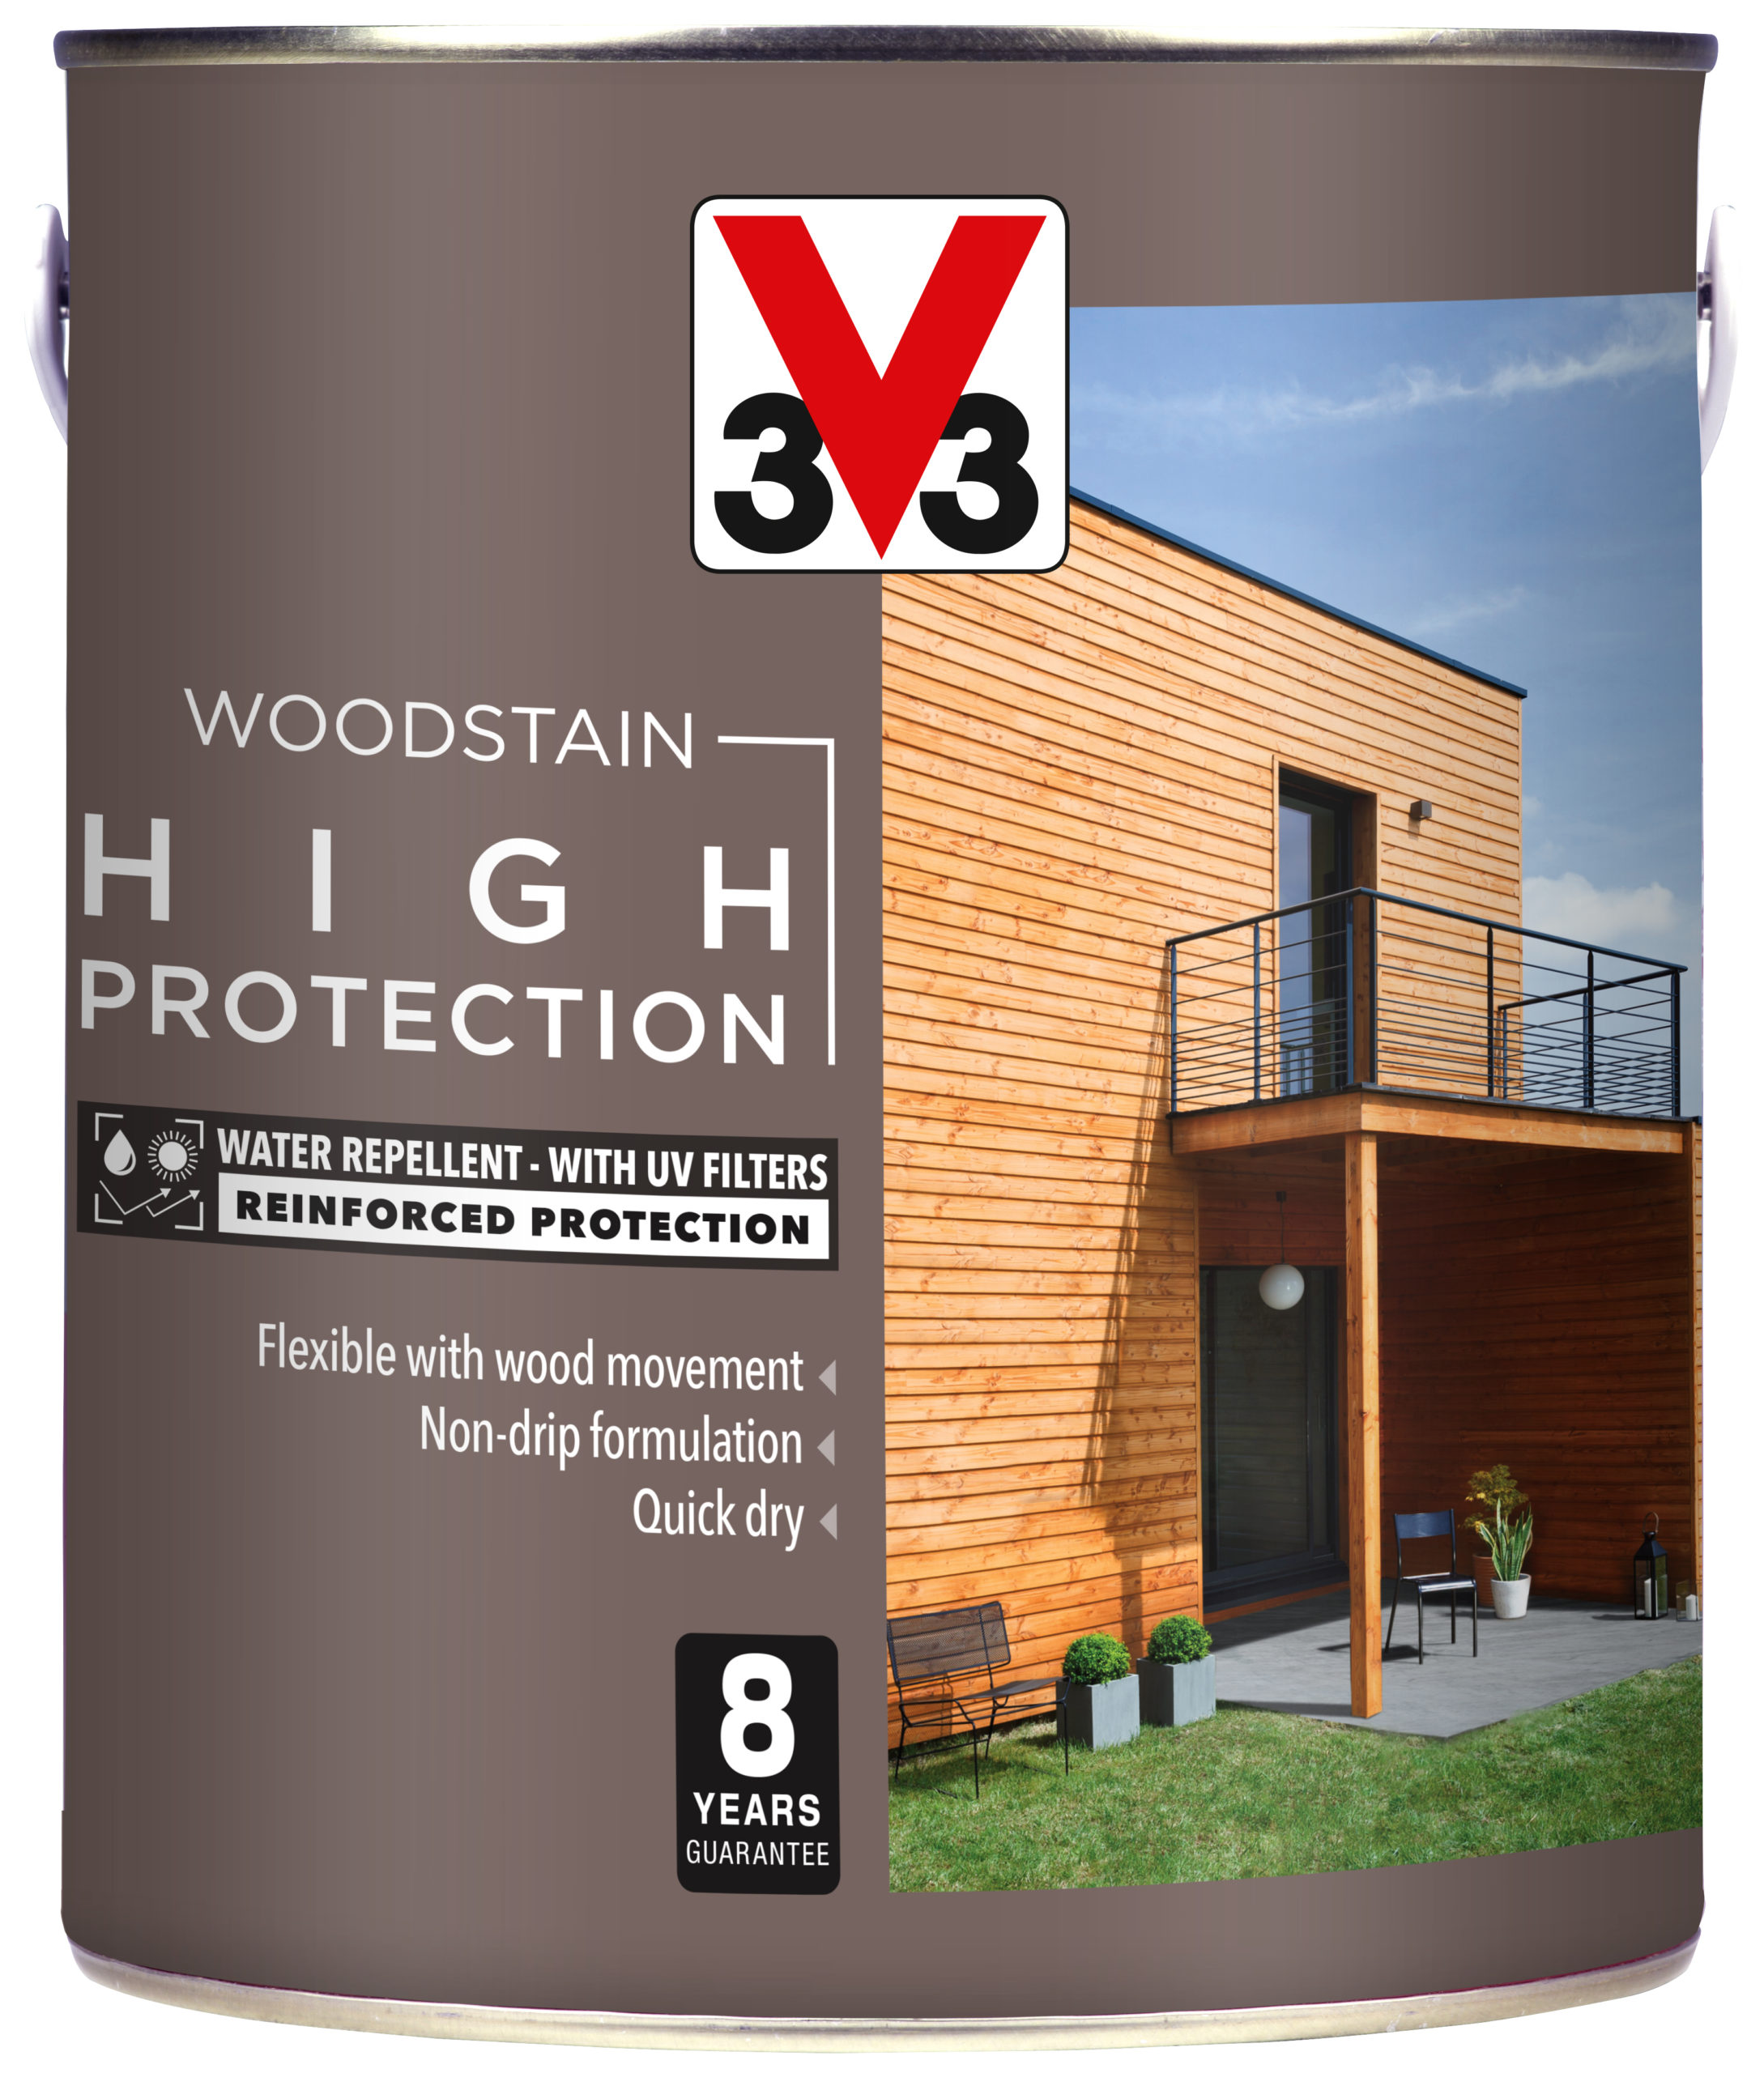 High Protection Woodstain